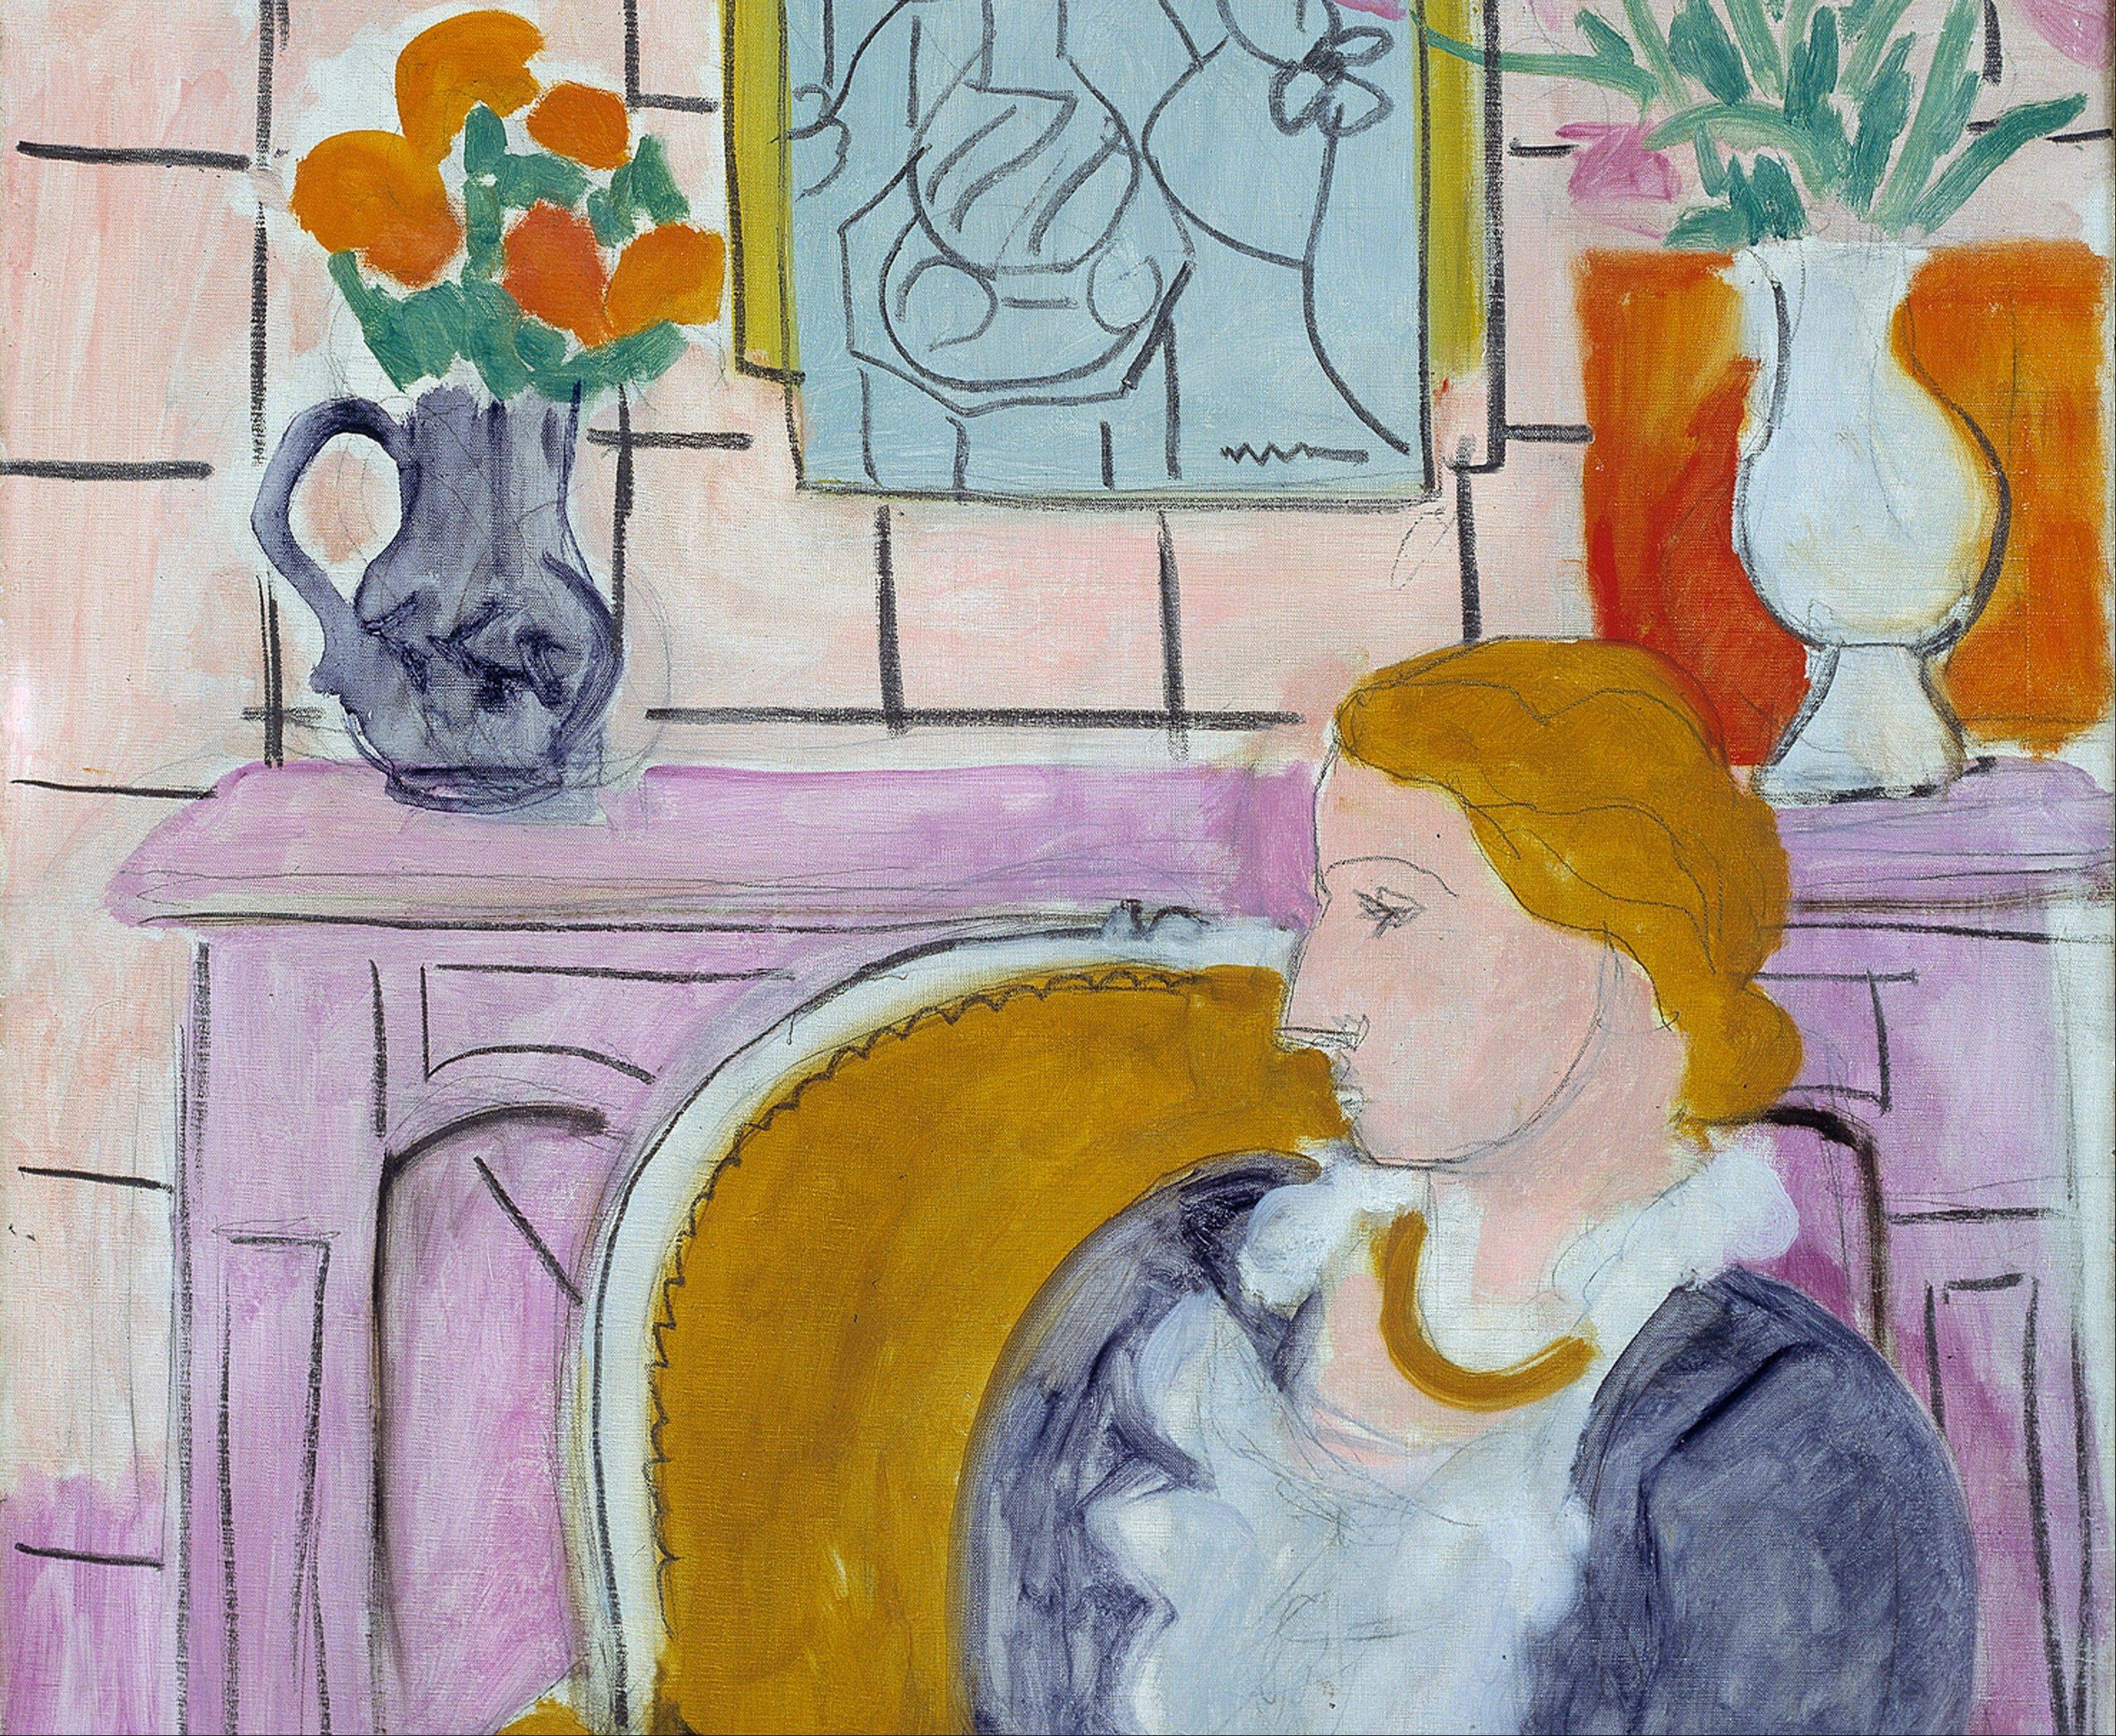 Part of the painting �Blue Dress in an Yellow Arm Chair�, circa 1936 by Henry Matisse.